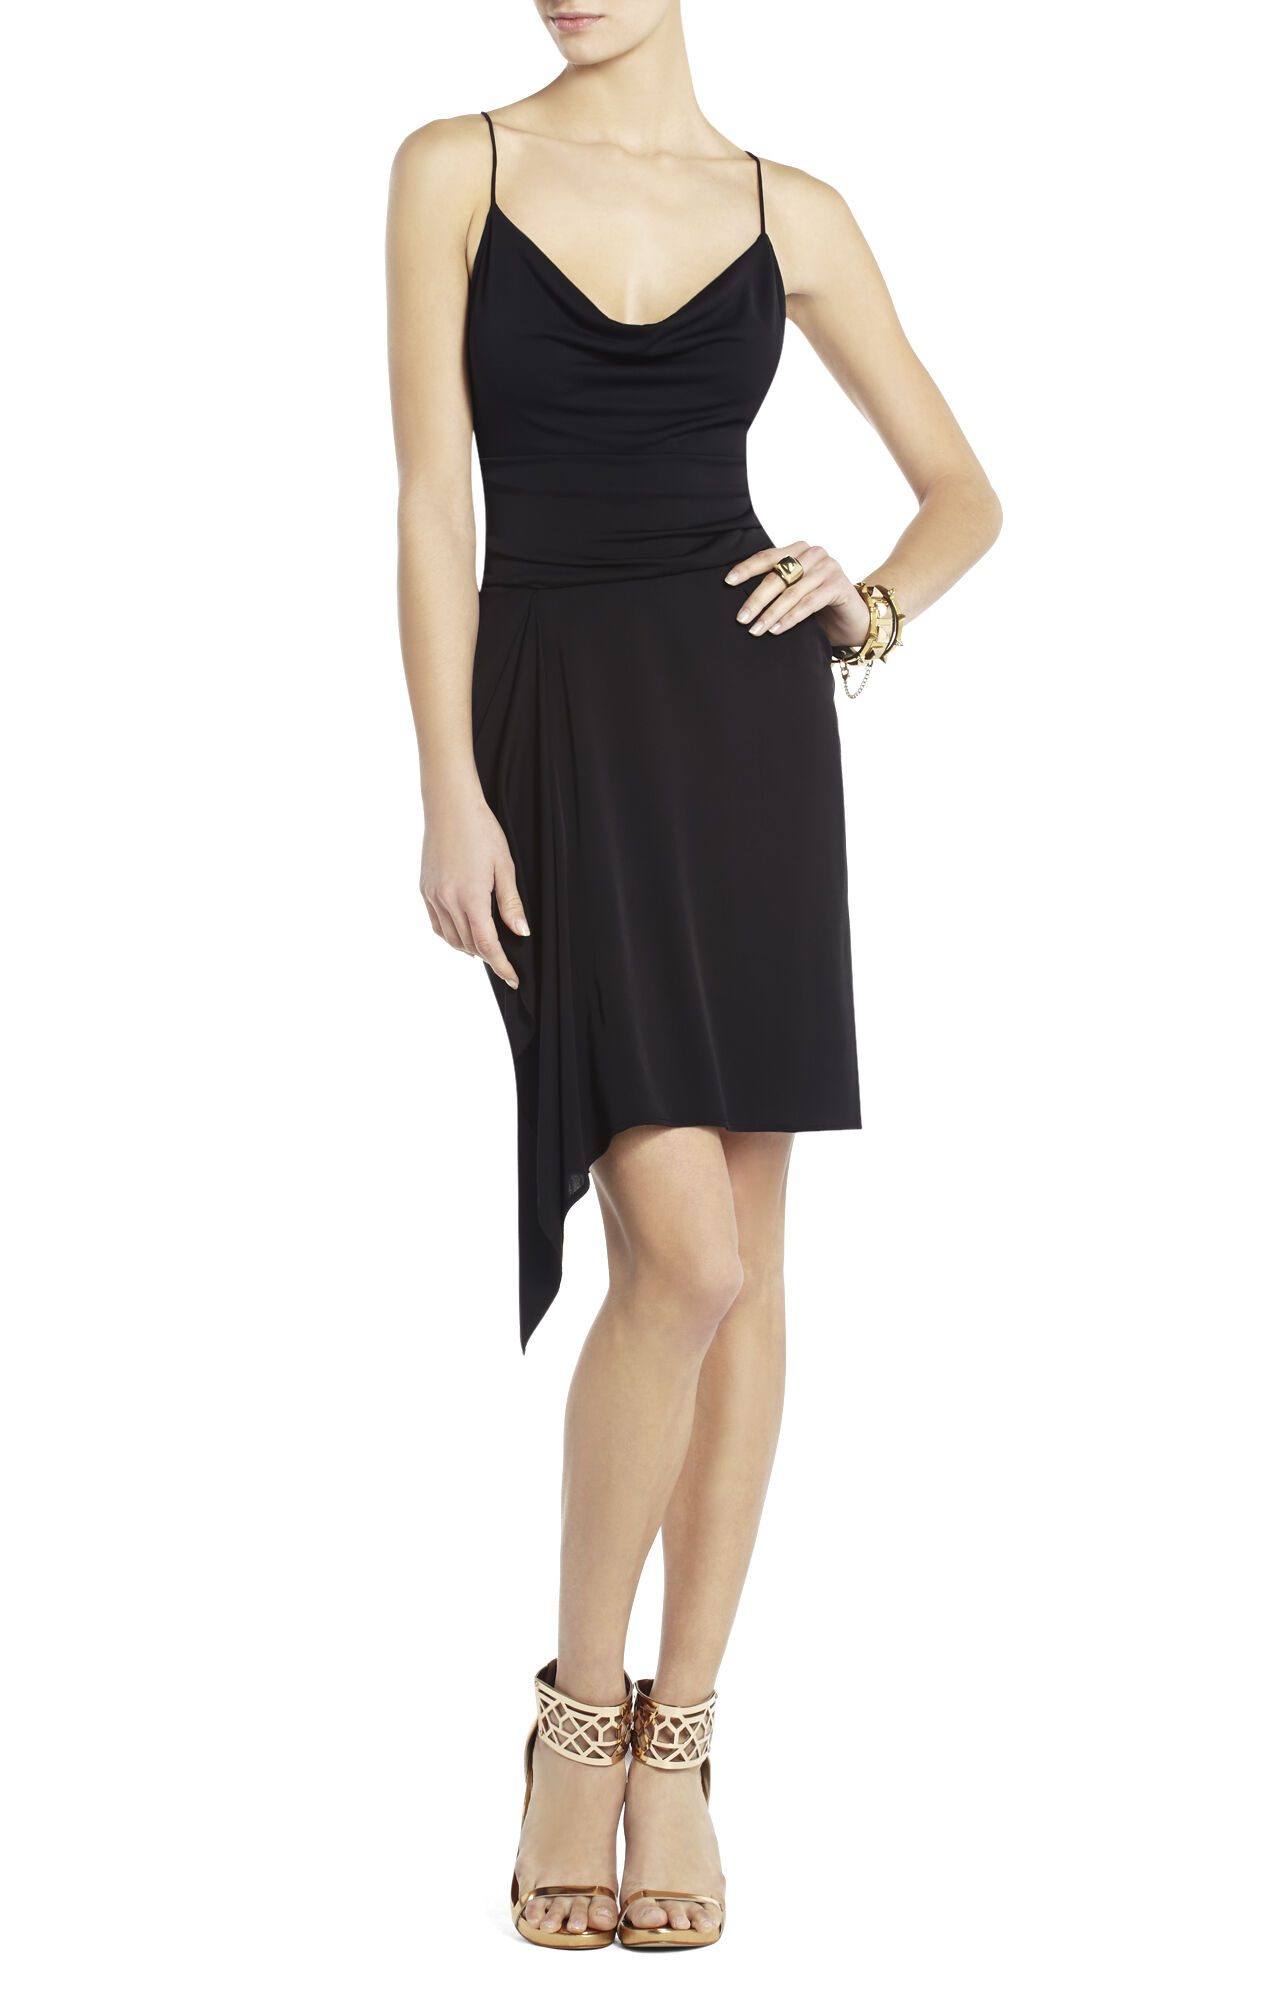 Lottie Draped Dress